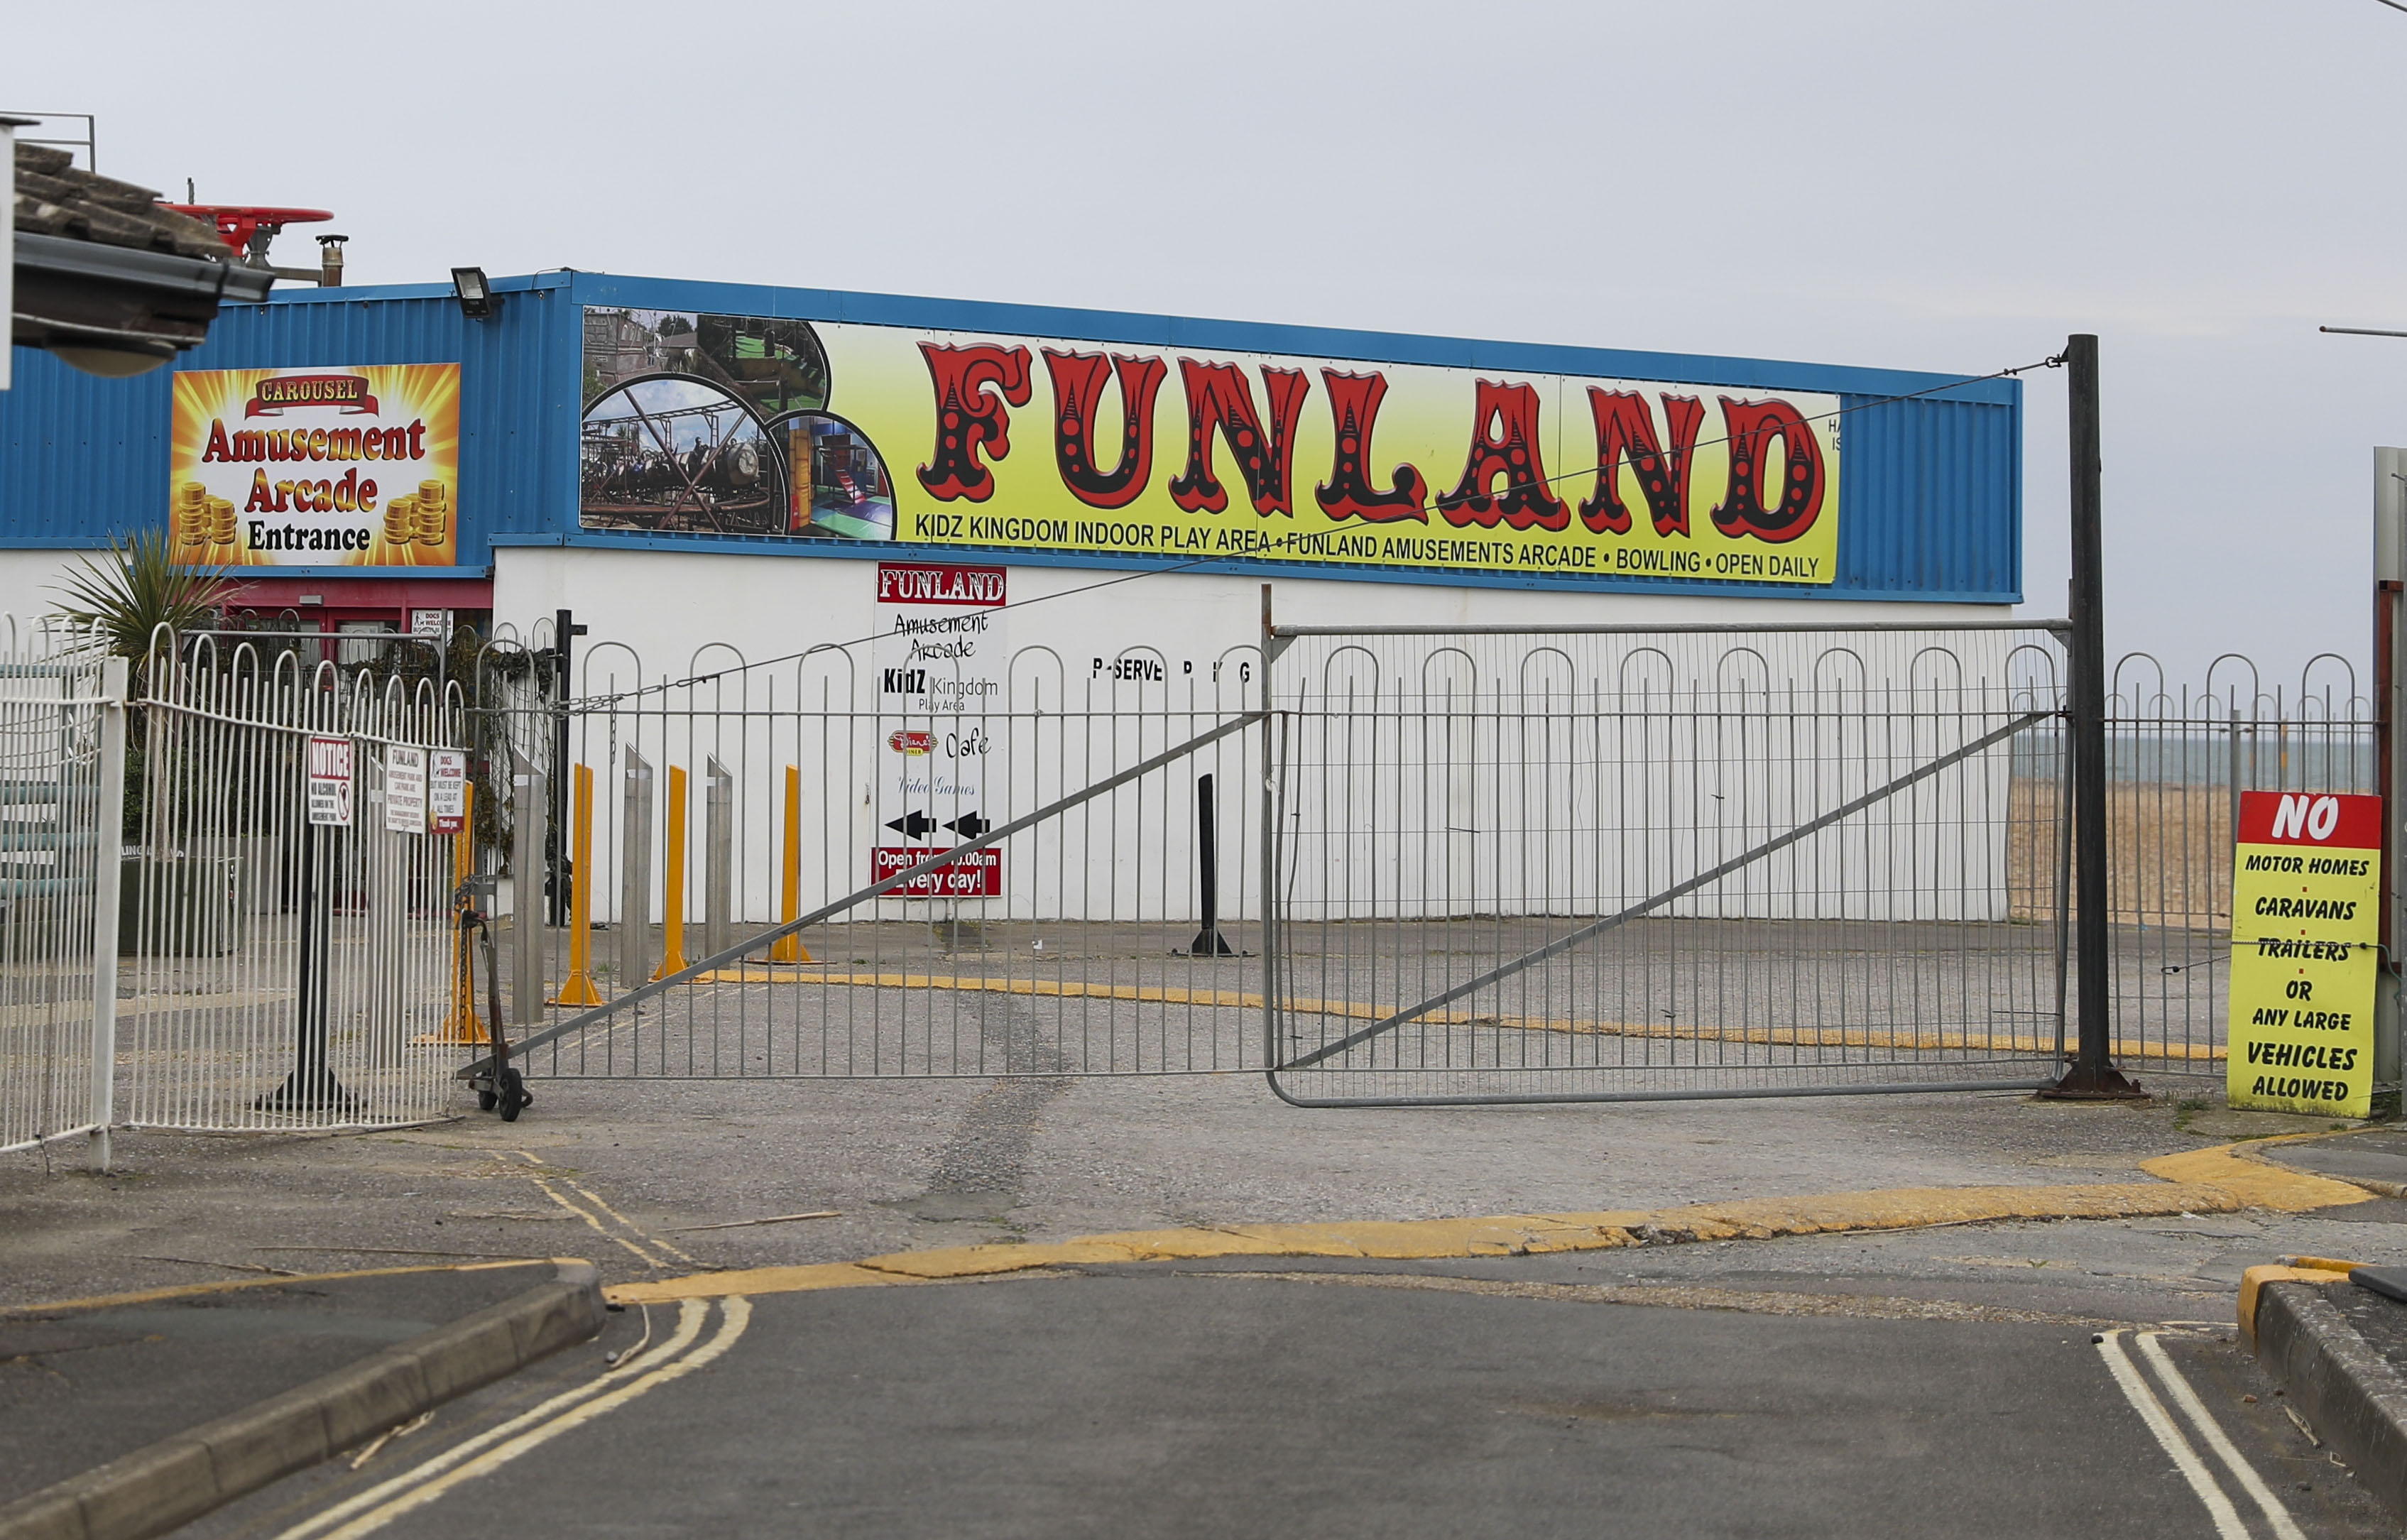 Funland in Hayling Island, Hampshire, remains closed as the UK continues in lockdown to help curb the spread of the coronavirus.